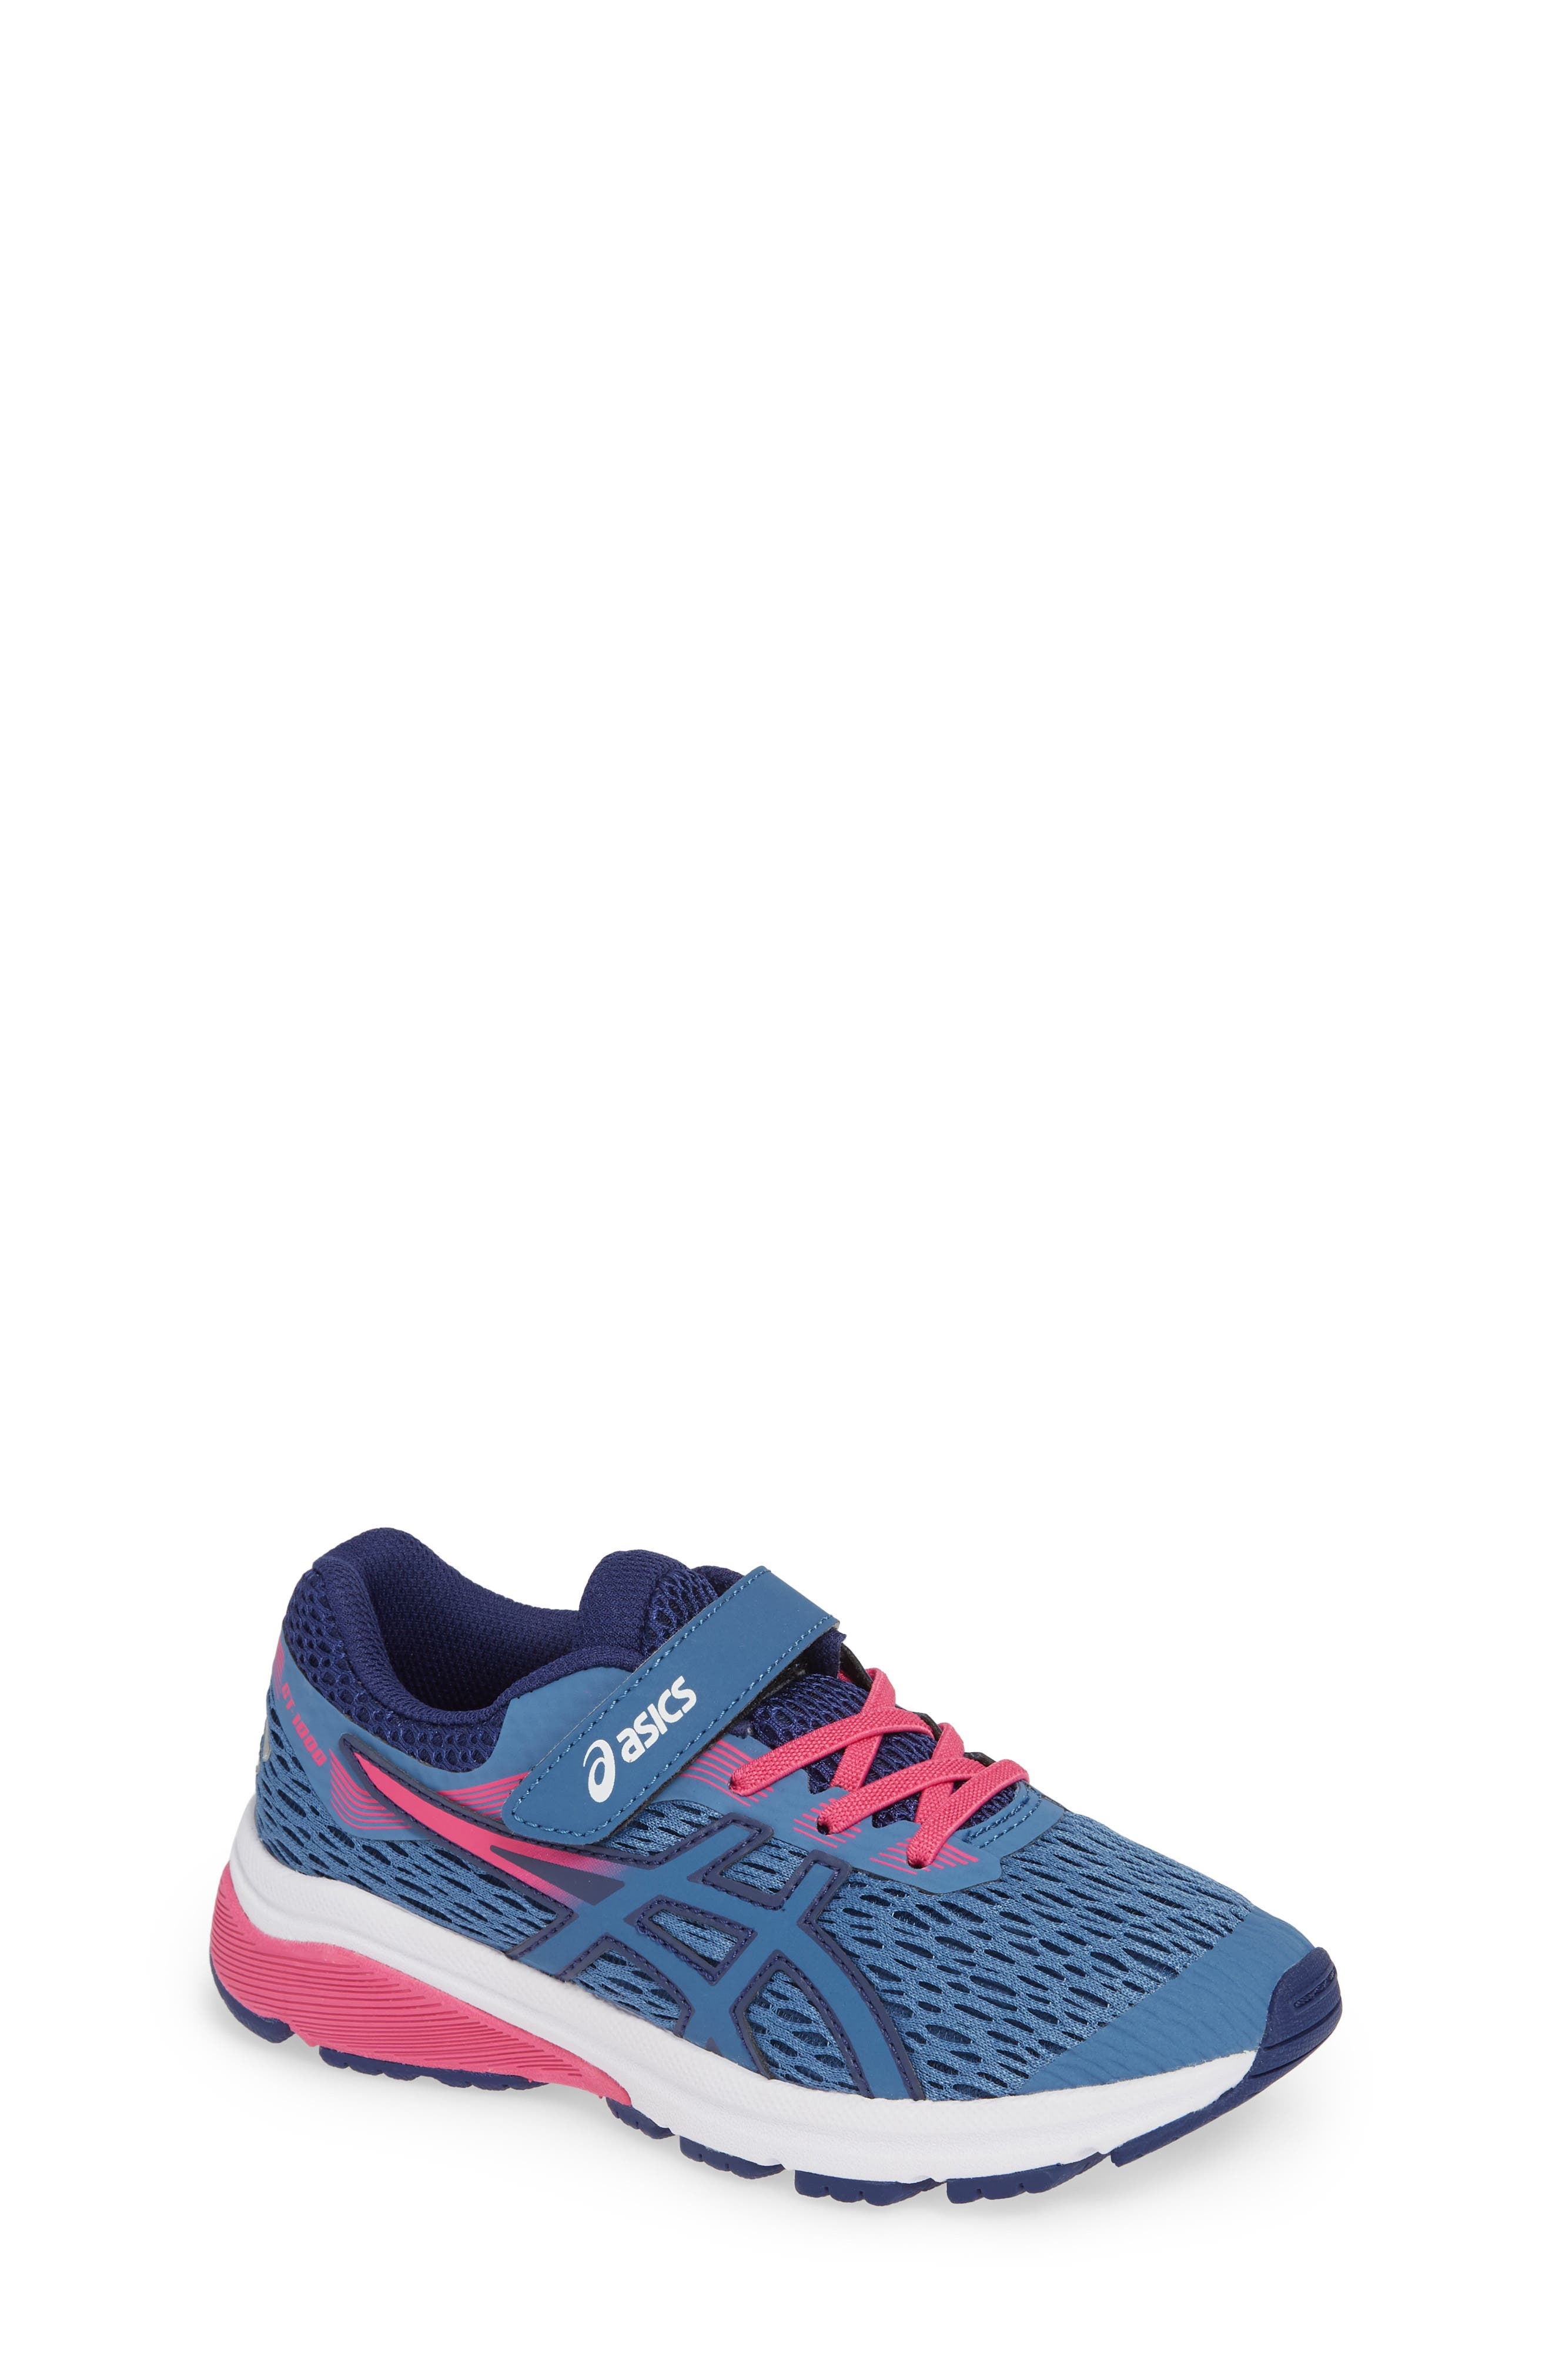 GT 1000 7 Running Shoe,                         Main,                         color, AZURE/ FUCHSIA PURPLE